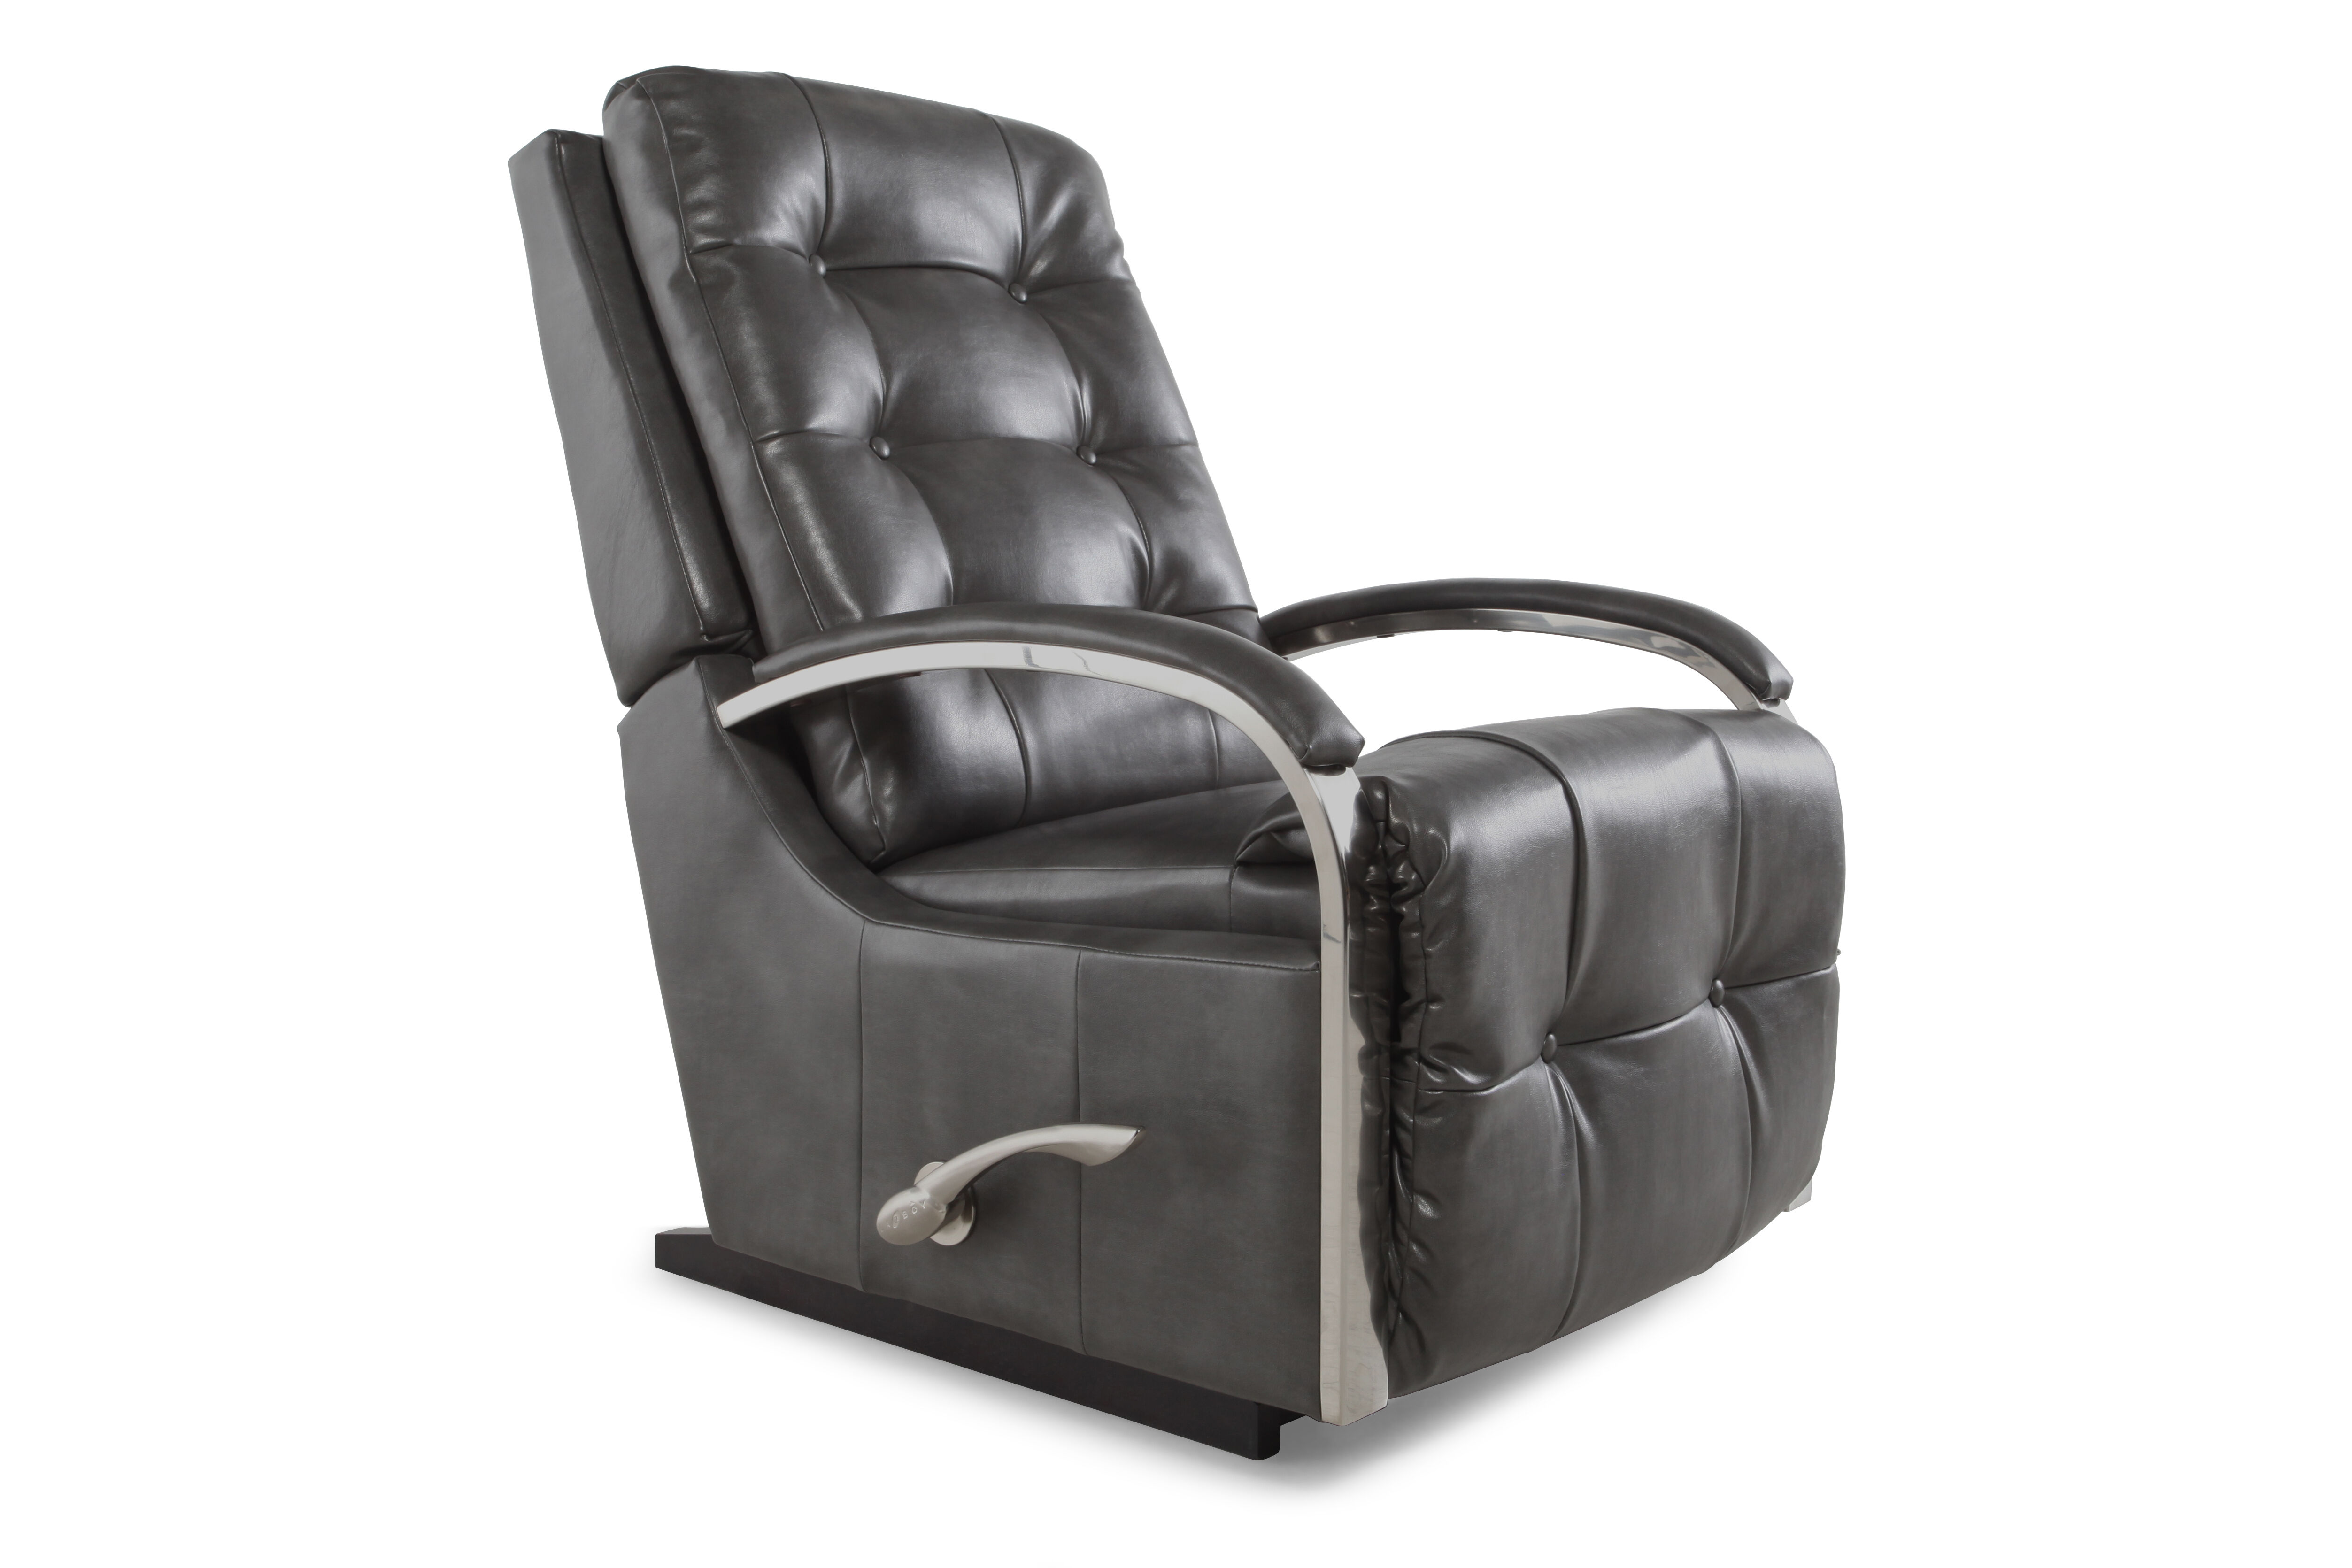 La-Z-Boy Impulse Metal Rocker Recliner  sc 1 st  Mathis Brothers & La-Z-Boy Impulse Metal Rocker Recliner | Mathis Brothers Furniture islam-shia.org